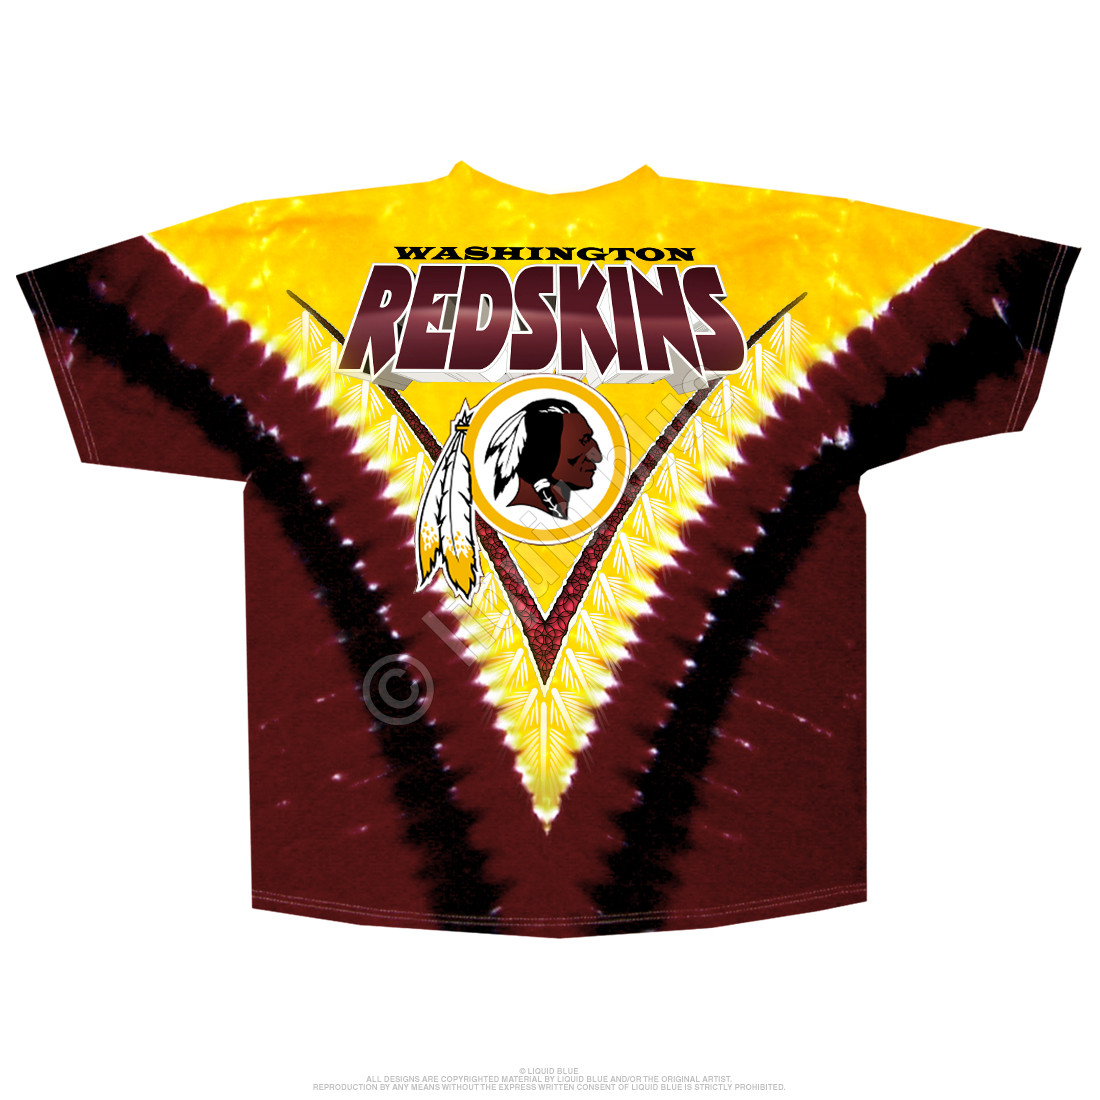 1faeffd17 NFL Washington Redskins V Tie-Dye T-Shirt Tee Liquid Blue